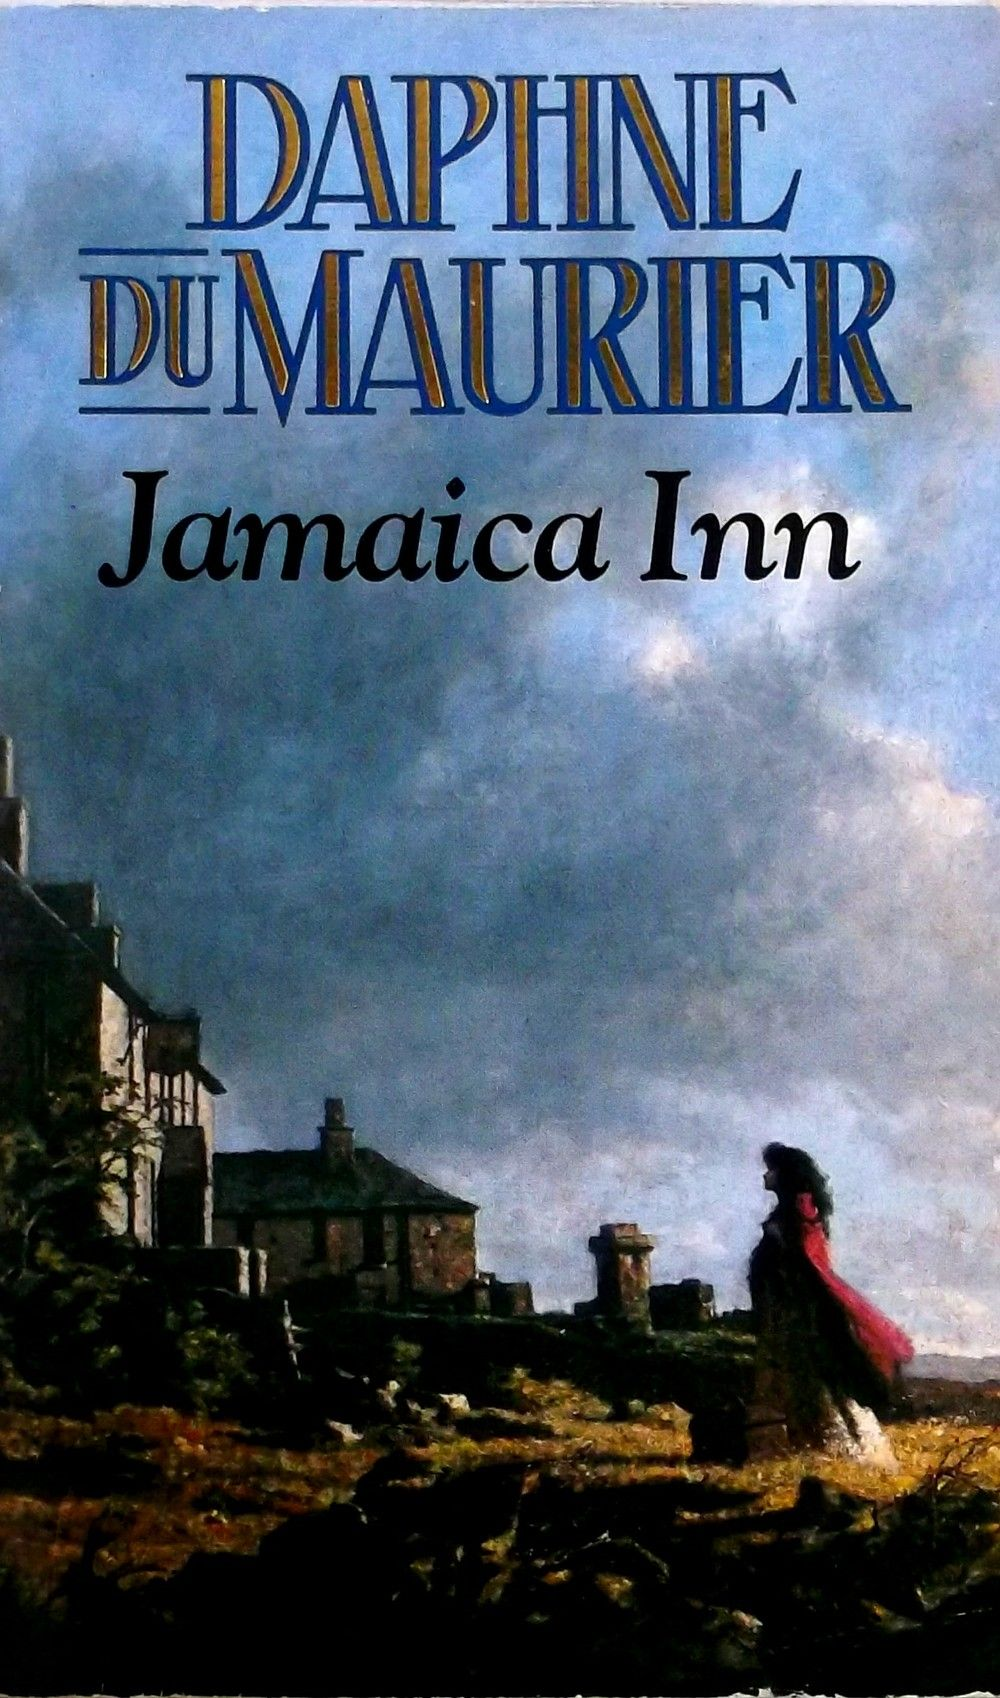 Book cover for Jamaica Inn by Daphne du Maurier Jamaica Inn in the South Manchester, Chorlton, Cheadle, Fallowfield, Burnage, Levenshulme, Heaton Moor, Heaton Mersey, Heaton Norris, Heaton Chapel, Northenden, and Didsbury book group